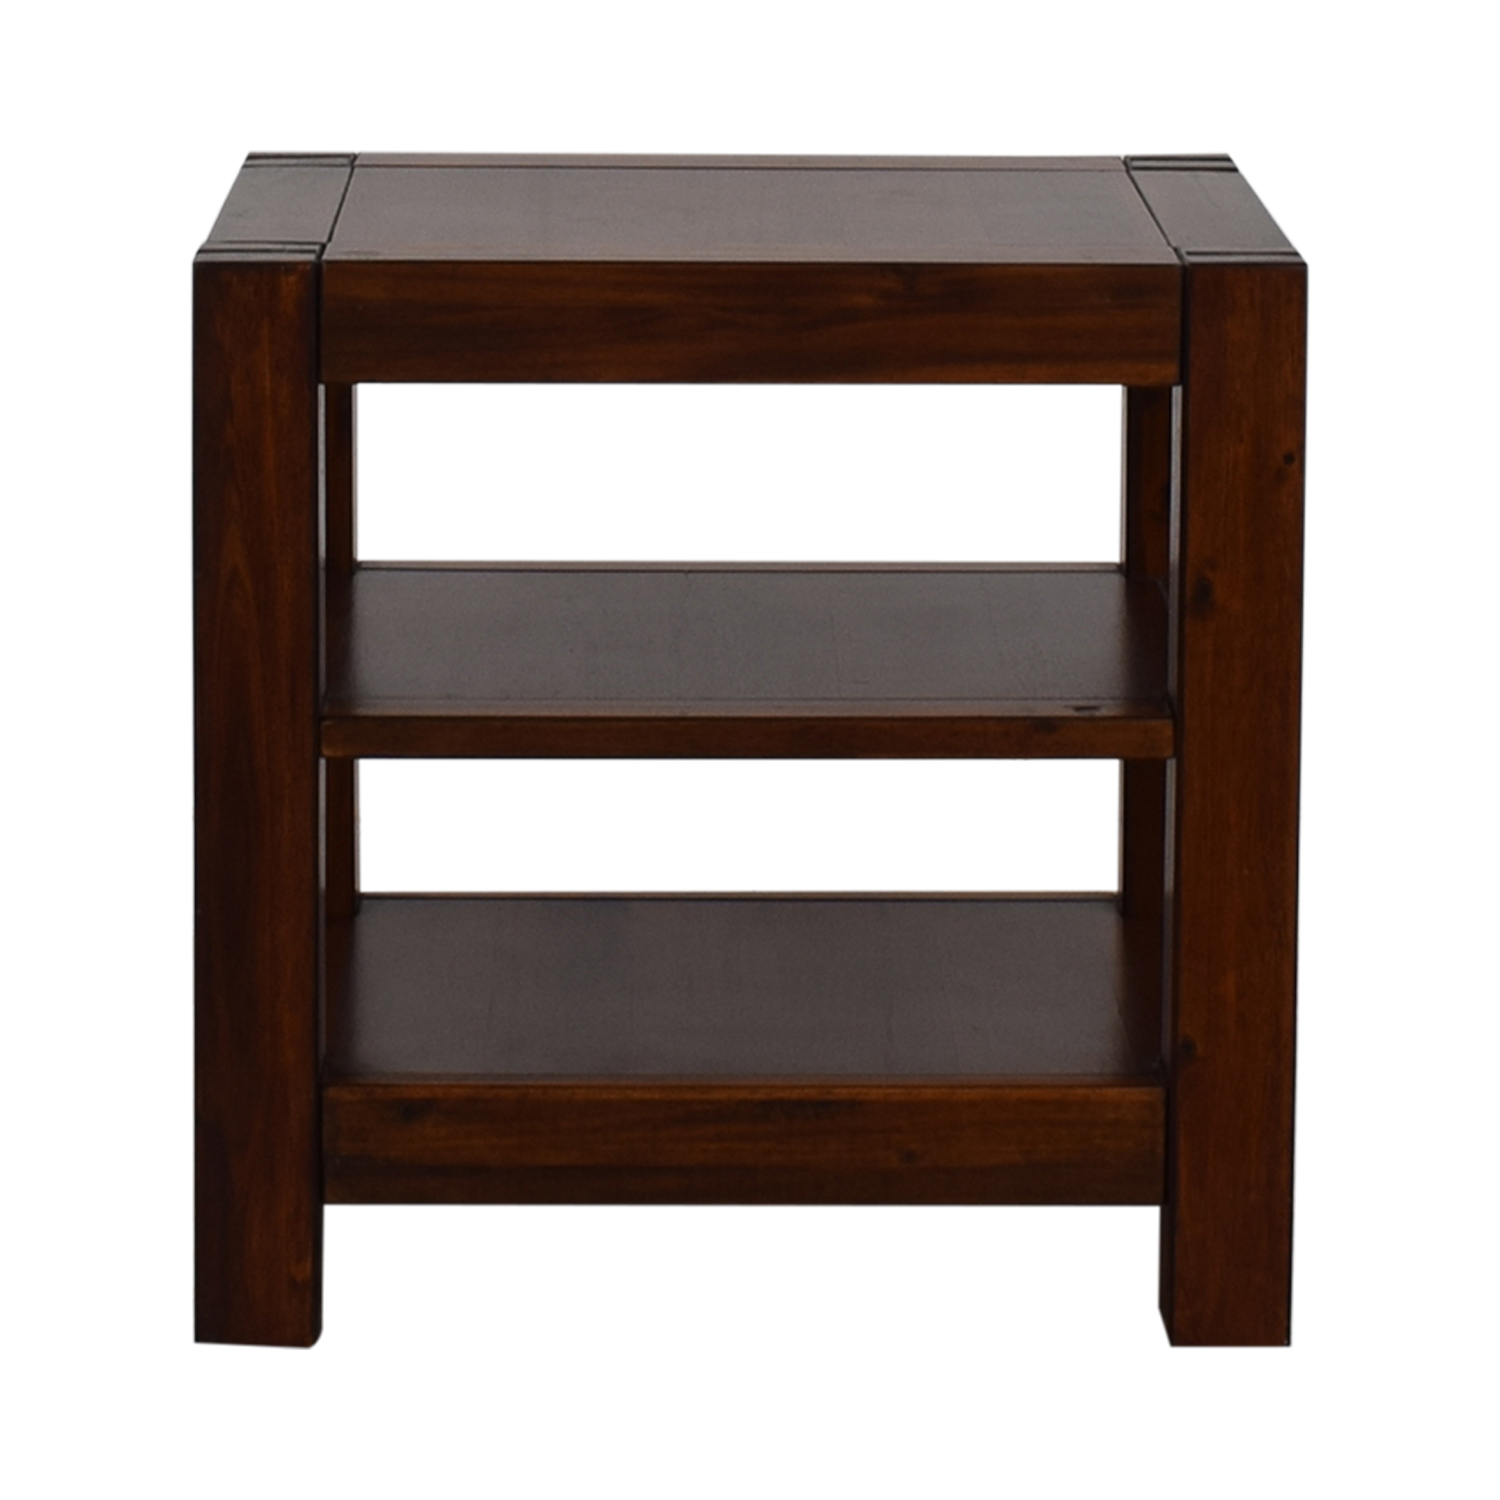 off jofran furniture wood end table tables ethan allan coffee with glass top and drawers unfinished dining bench selfless make your own bedside kmart lawn garden discontinued